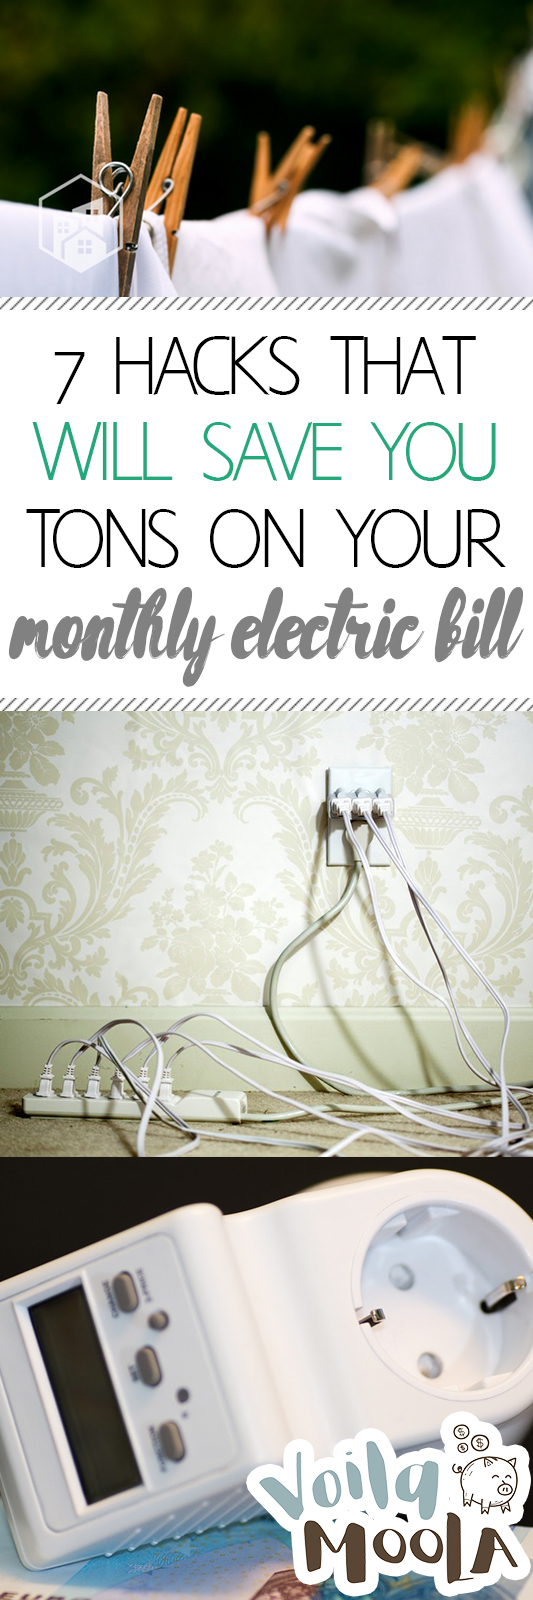 7 Hacks That Will Save You Tons on Your Monthly Electric Bill| Save Money, Saving Money, How to Save Money, How to Save Money on Utilities, Electric Bill, Pay Less for Utilities #SaveMoney #SaveonUtilities #Money